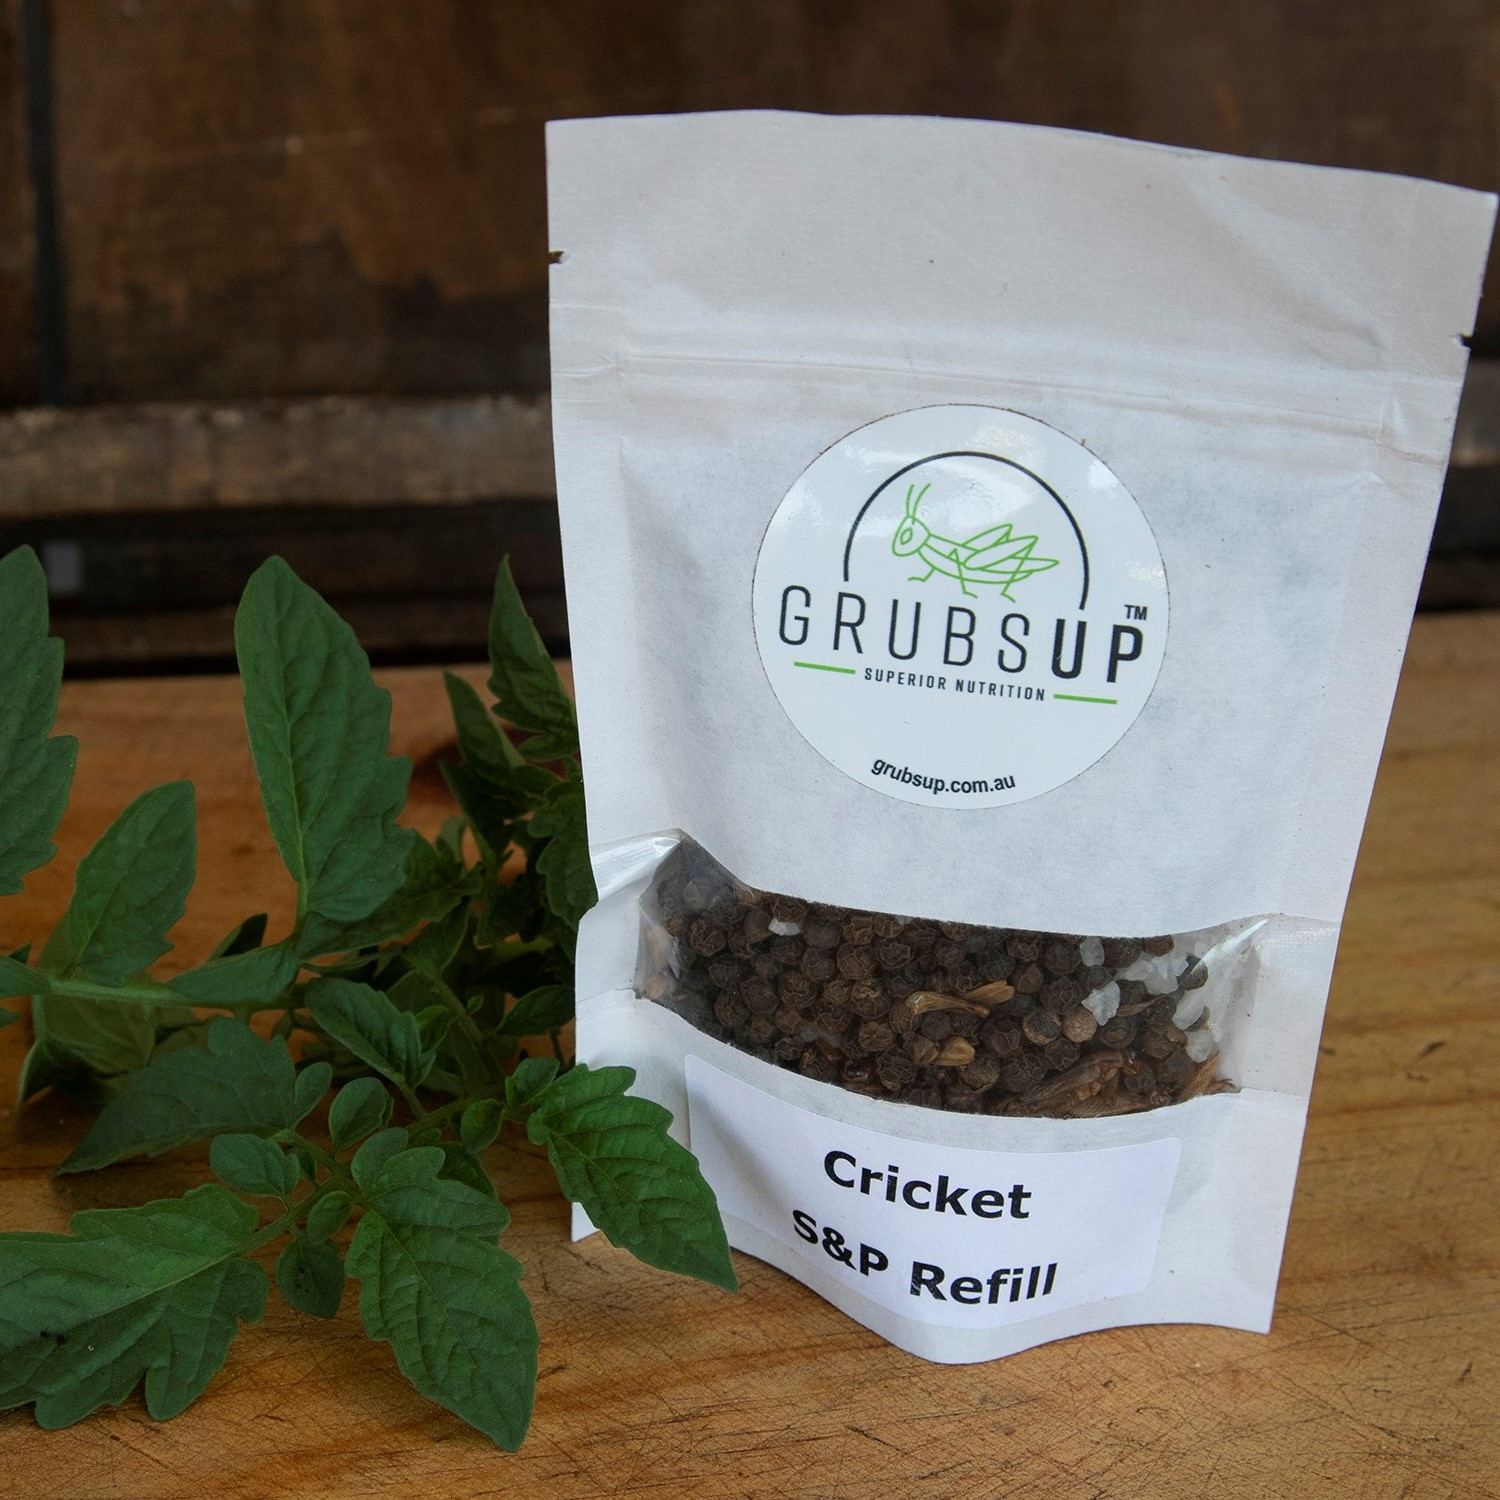 Superior Nutrition Products | Our Products | Grubs Up | Best Selling Roast Cricket Protein | Top Selling Crickets Grinder Refill | Roasted crickets grinder refill | Roasted Cricket Protein Bar | Best Roasted Crickets | Best Roasted Mealworms